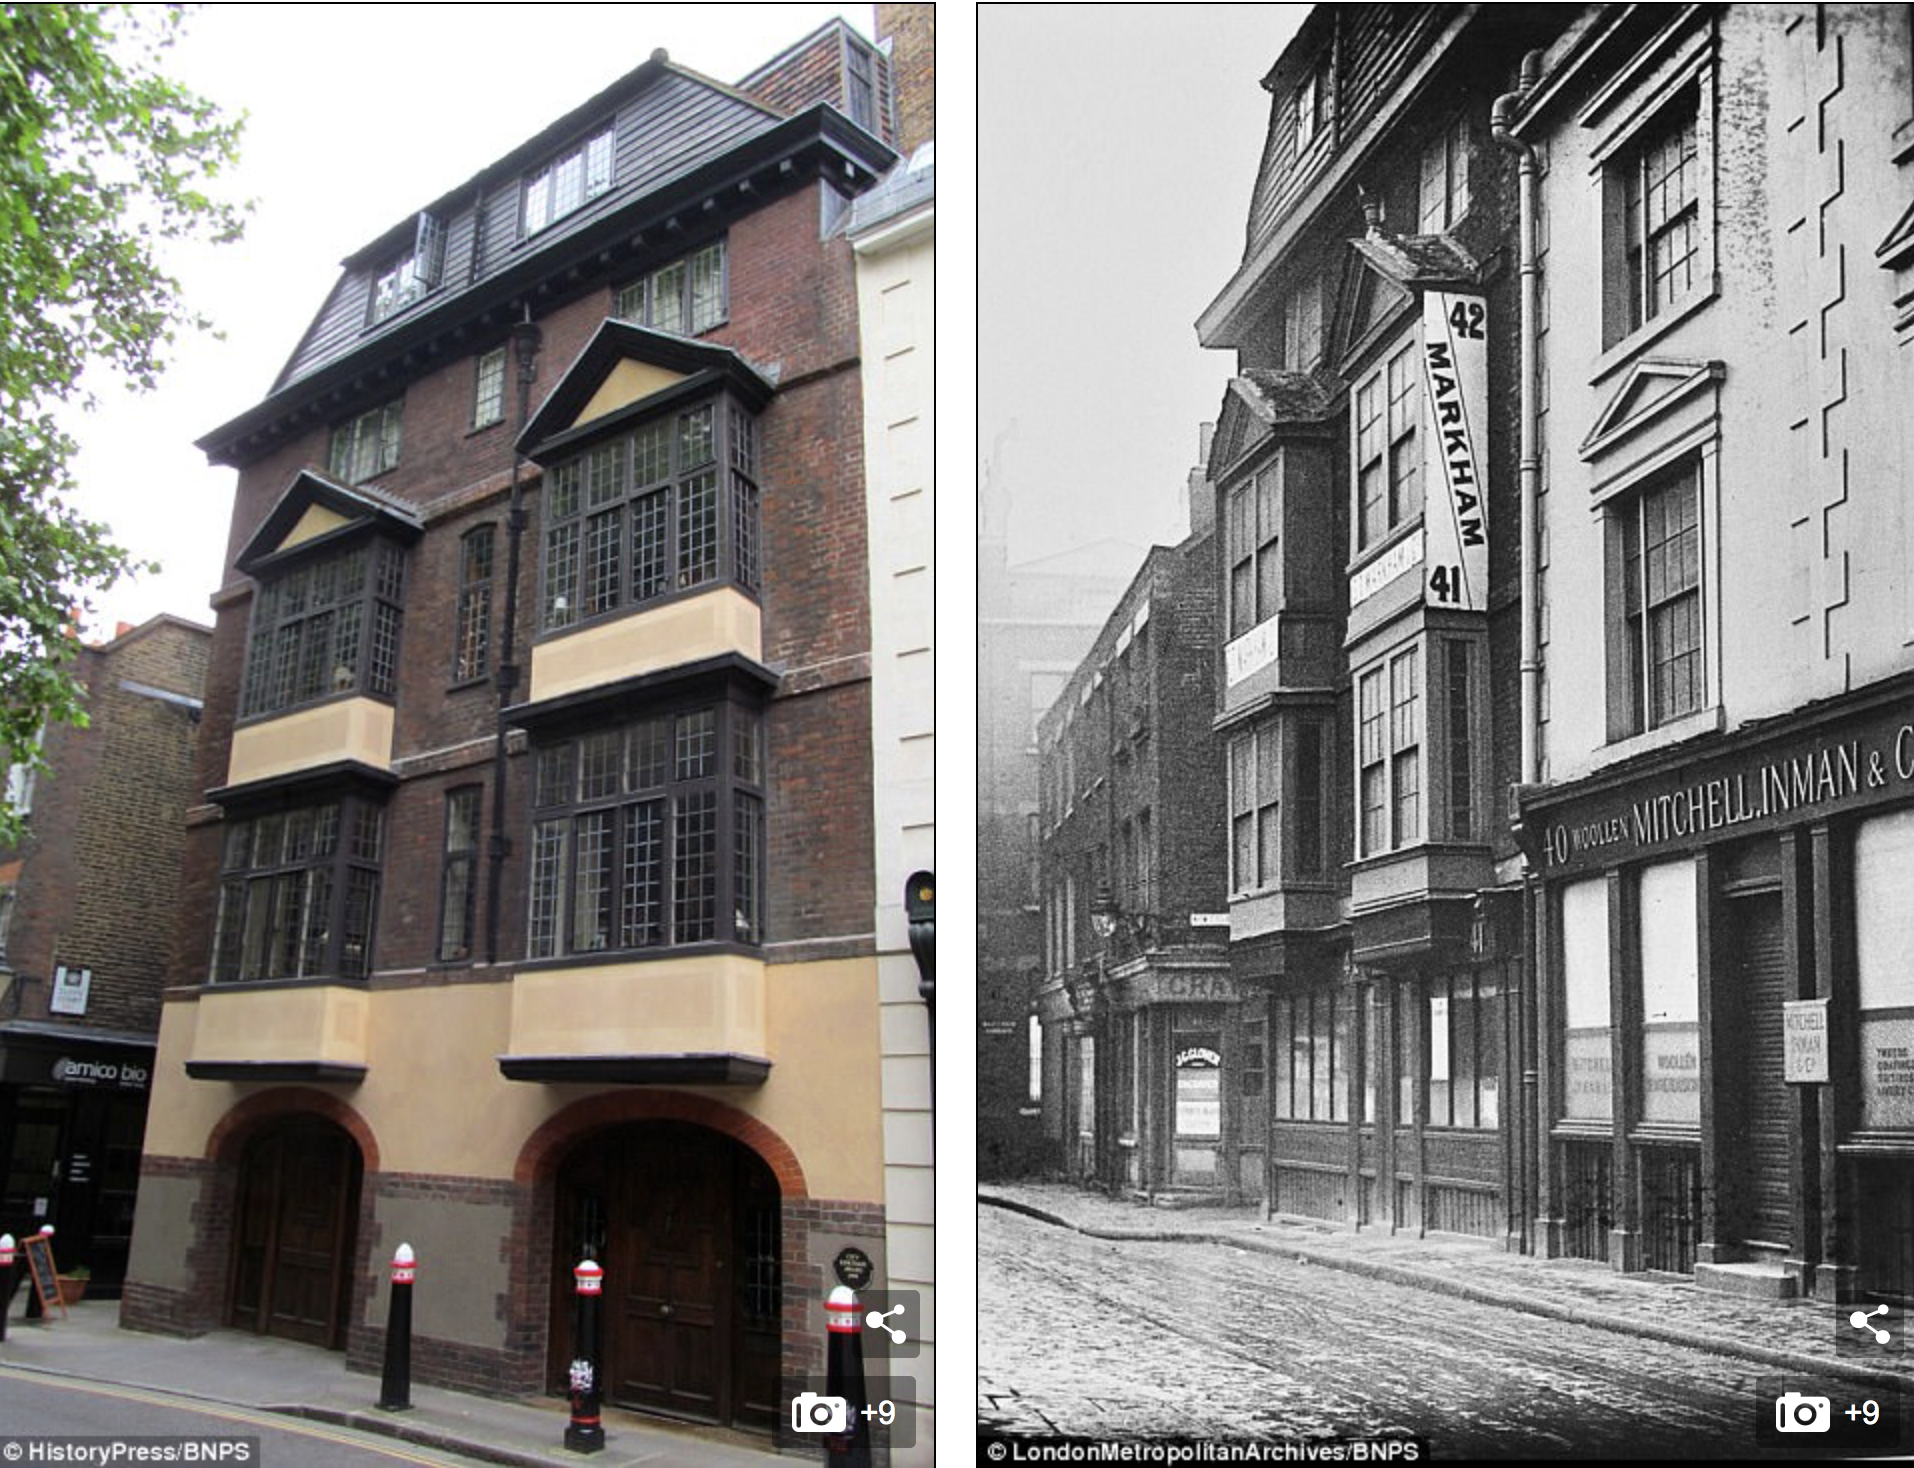 The Oldest House in London Now and Then